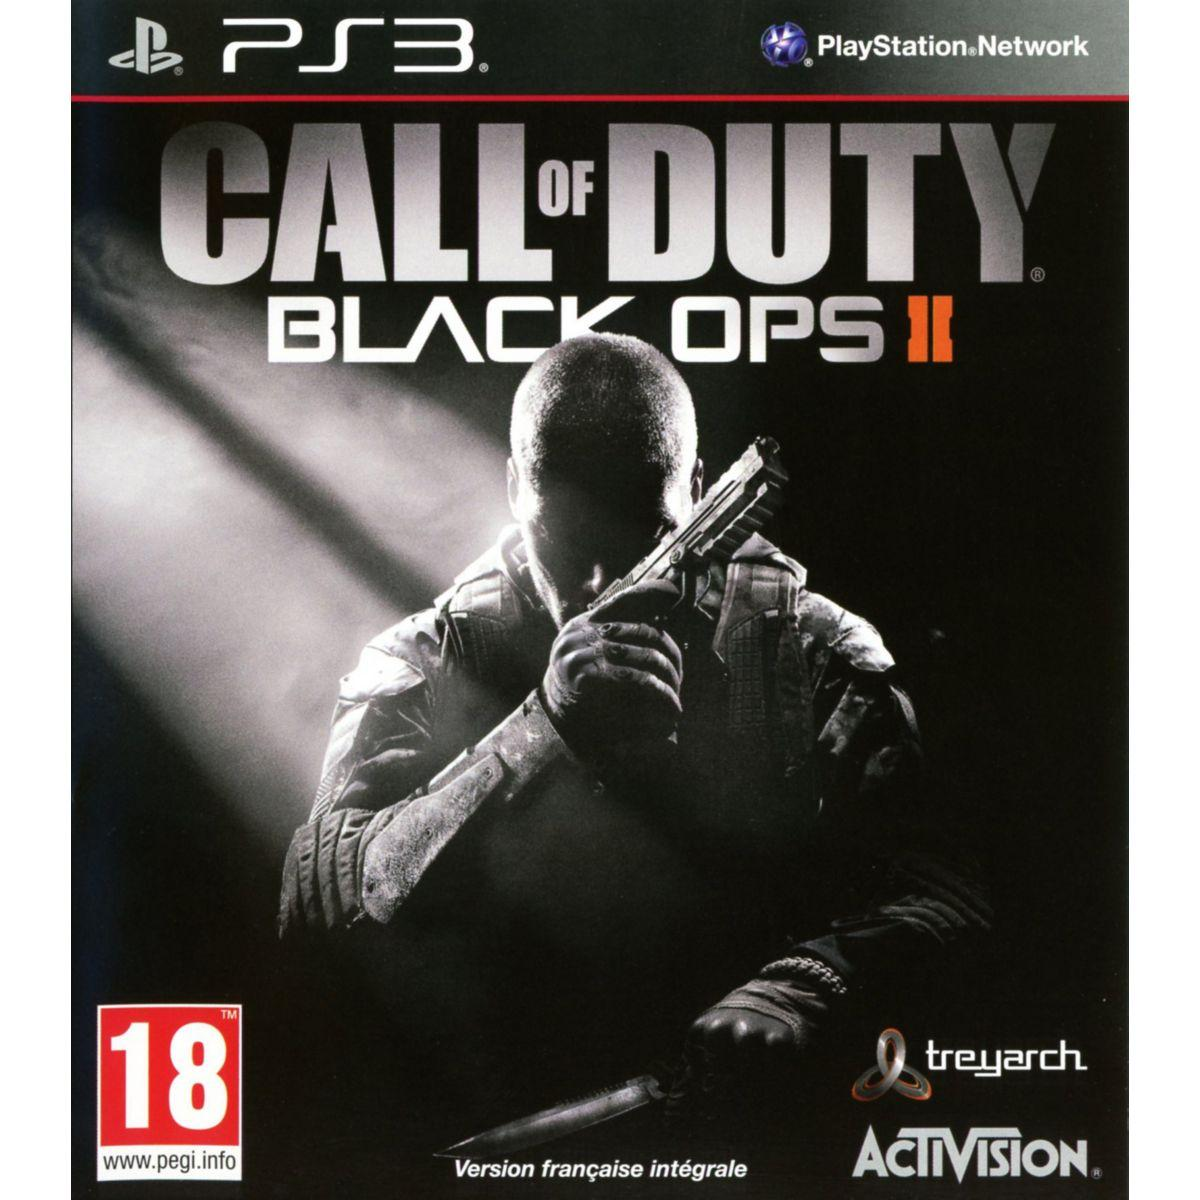 Jeu ps3 activision call of duty black ops 2 - 2% de remise immédiate avec le code : cool2 (photo)